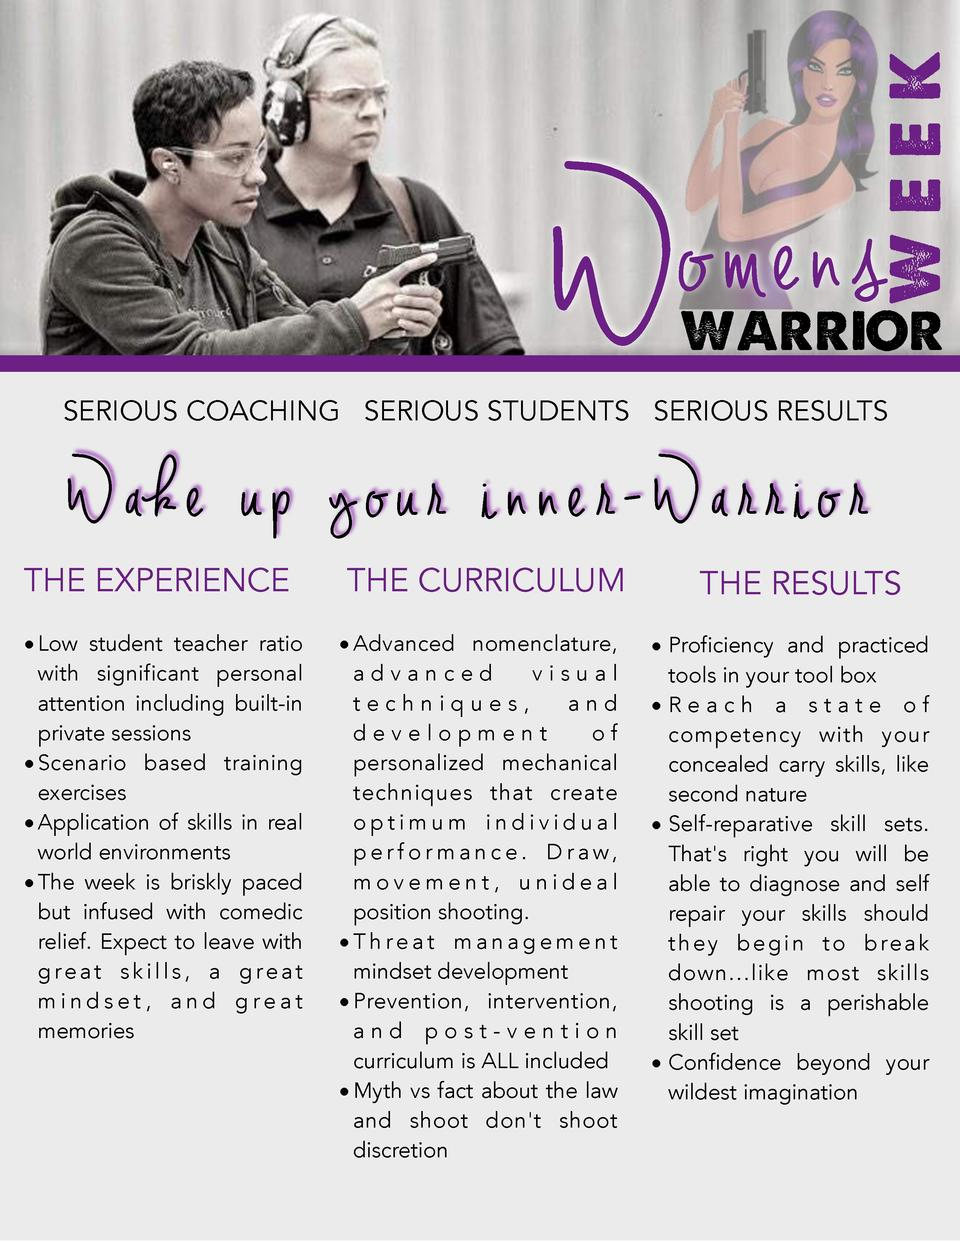 week  W  o men s  warrior  SERIOUS COACHING SERIOUS STUDENTS SERIOUS RESULTS  Wa ke up your inner-Warrior THE EXPERIENCE  ...